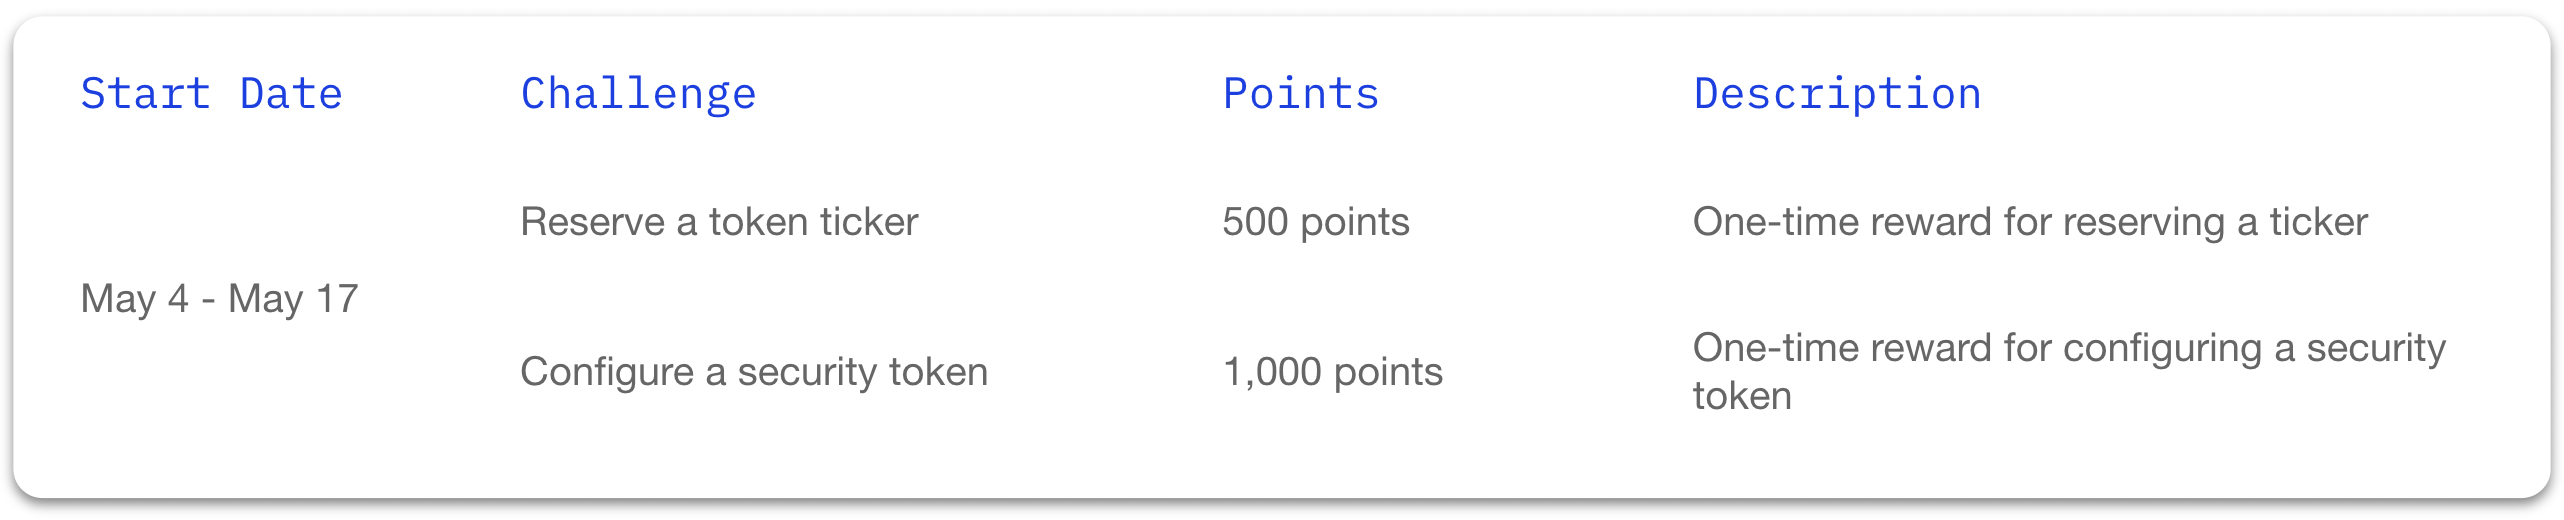 Table of the Polymesh Incentivized Testnet Challenge Drop #1 challenges, the points each challenge is worth, and a description of each challenge